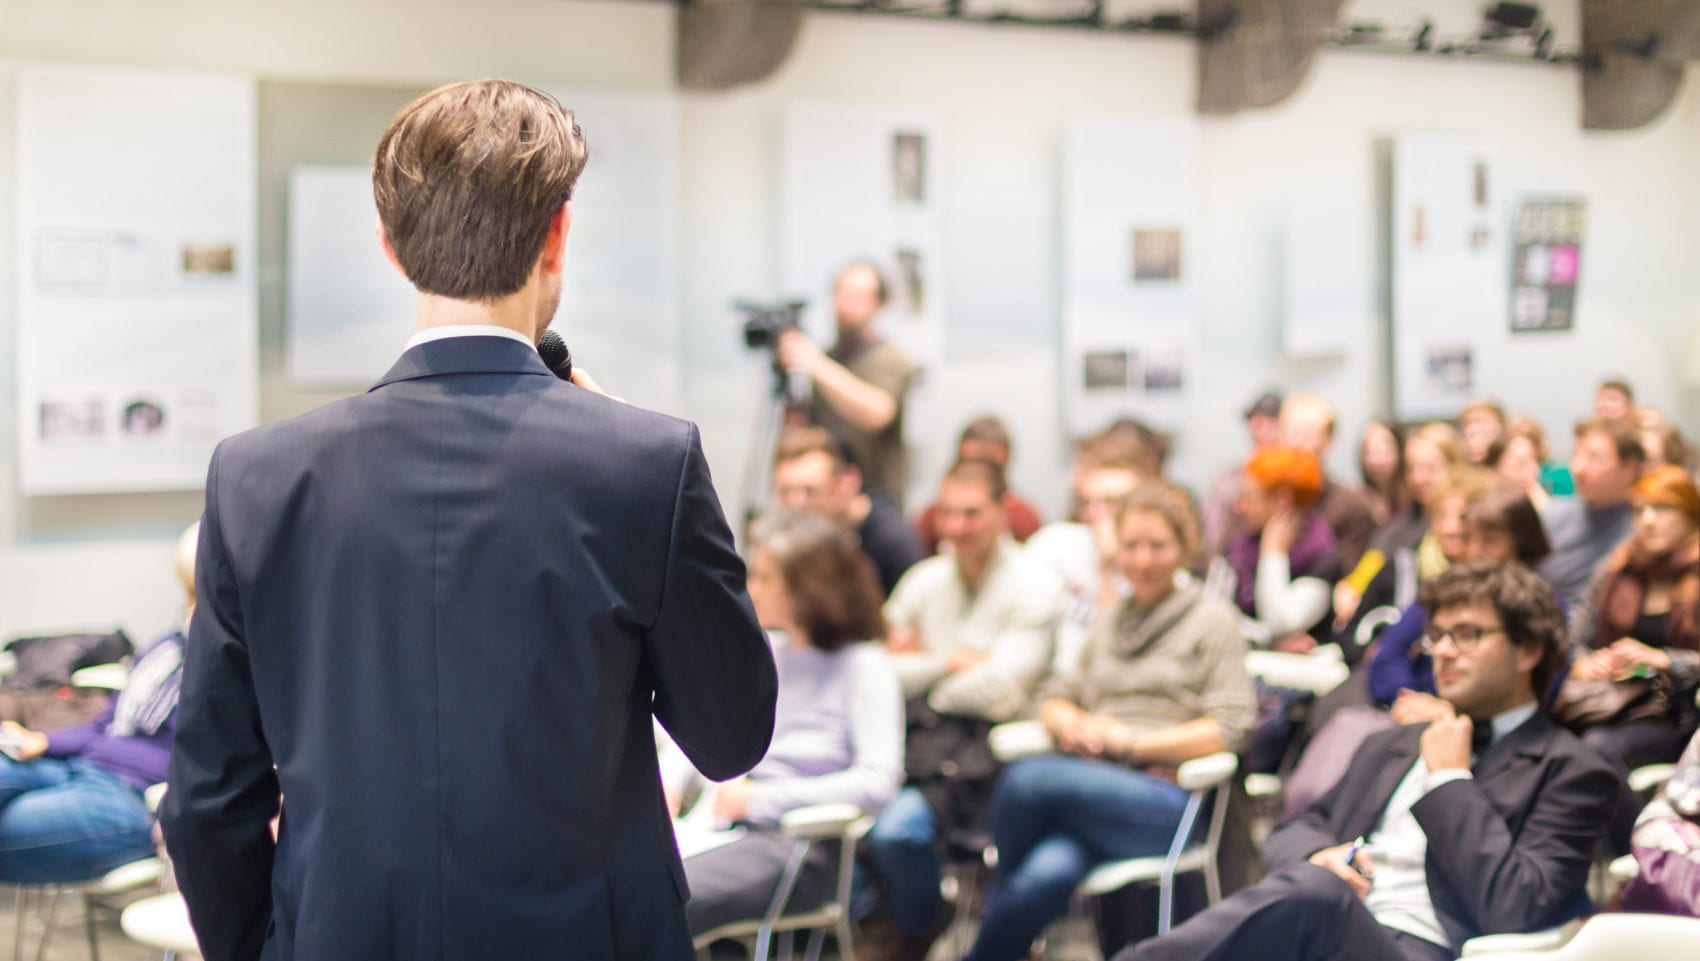 supporting a business event Small businesses should choose just one charity to support it would be great if the charity is related to the business if not, you should talk with your employees and see what charities/causes they feel passionate about and choose one of those.